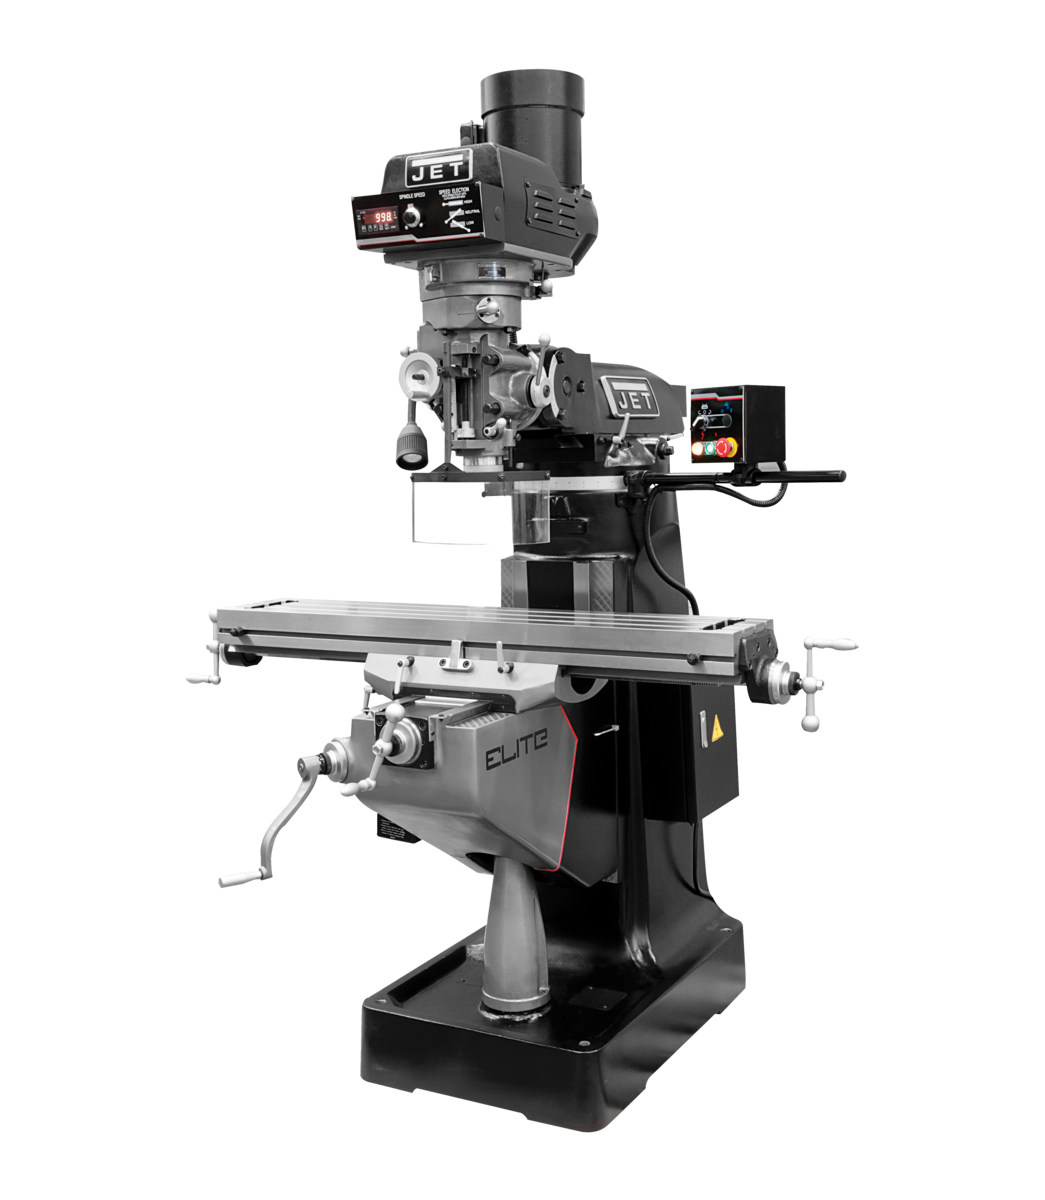 EVS-949 Mill with 3-Axis ACU-RITE 203 (Knee) DRO and Servo X, Y, Z-Axis Powerfeeds